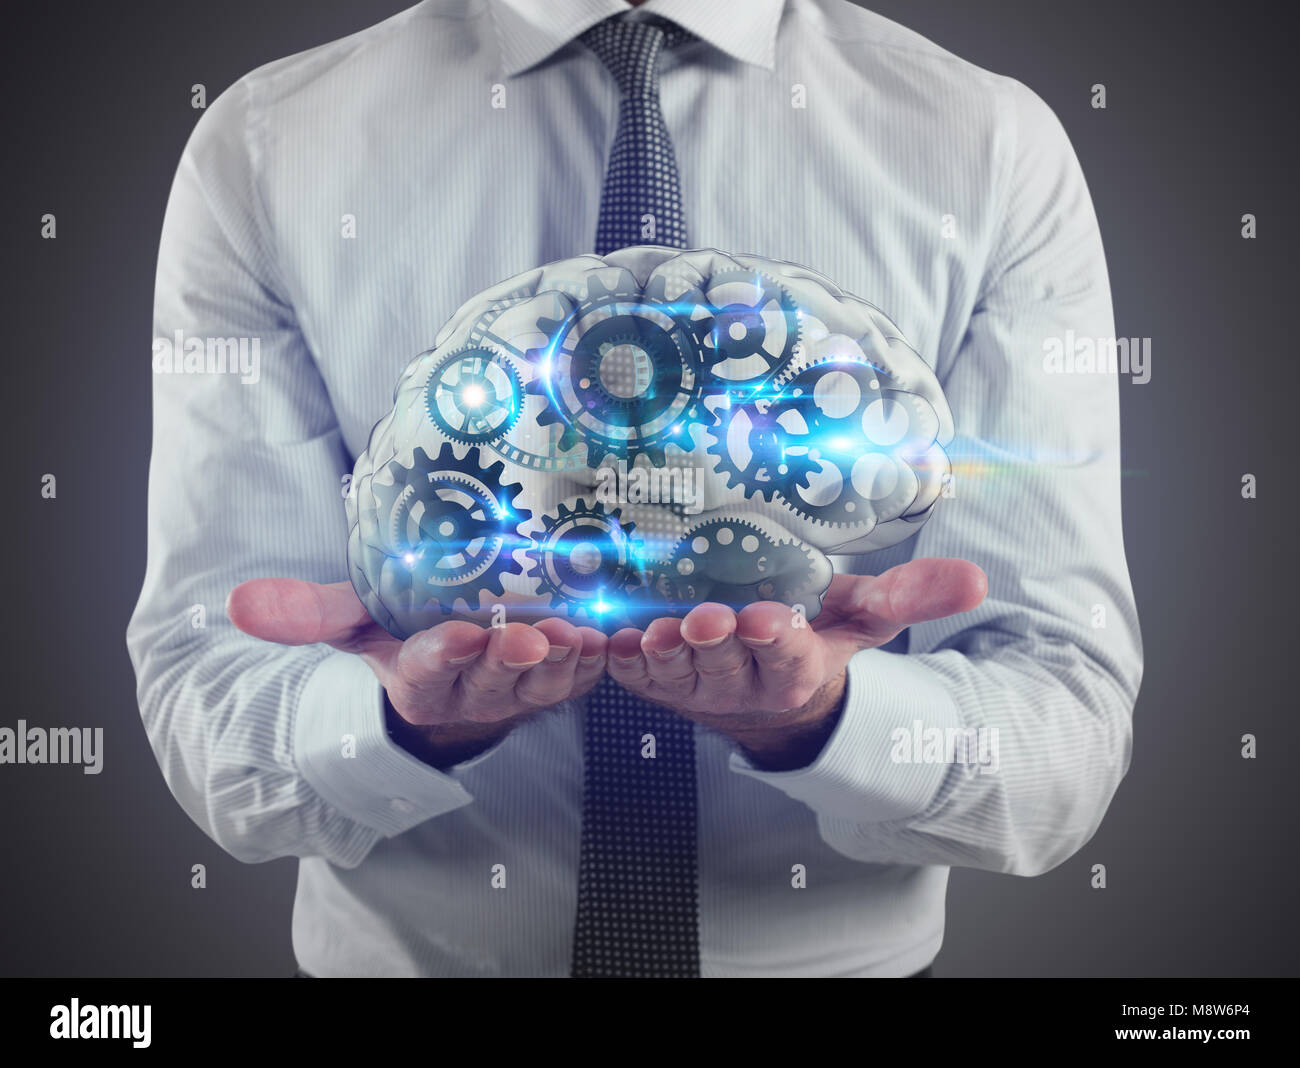 Man holds a brain with gears inside on his hands. 3D Rendering - Stock Image